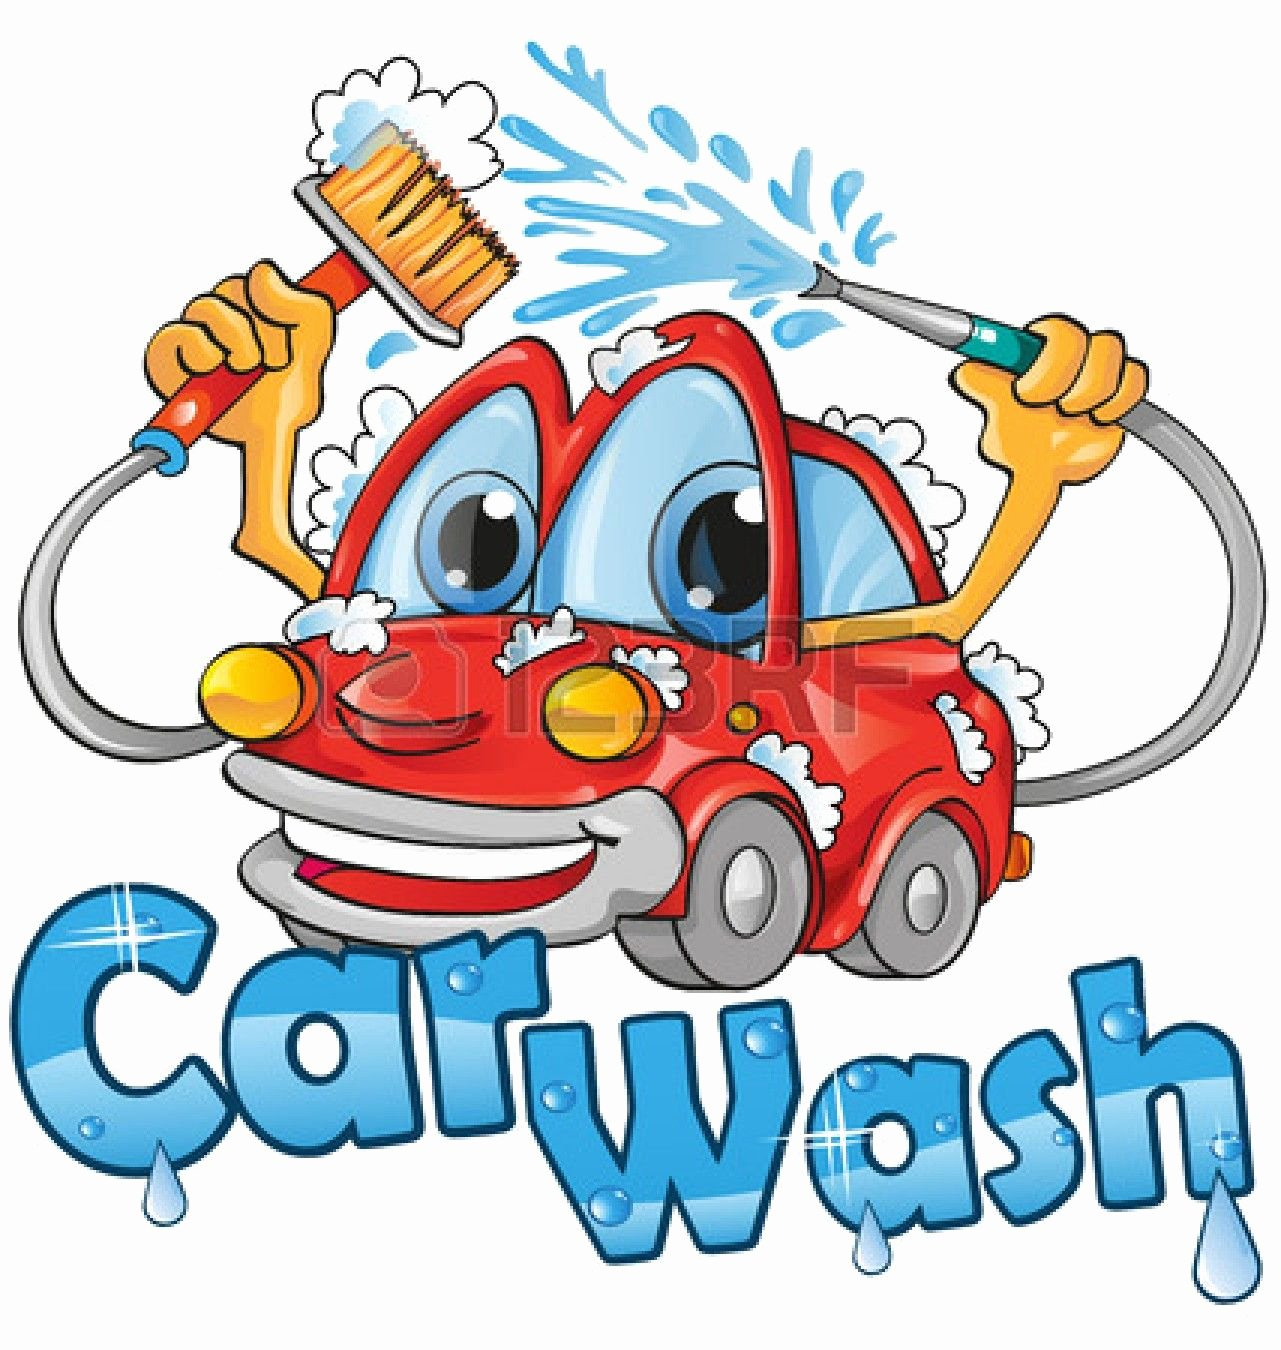 Auto Detailing Logo Template Best Of Car Wash Fundraiser Car Wash Fundraiser Clipart